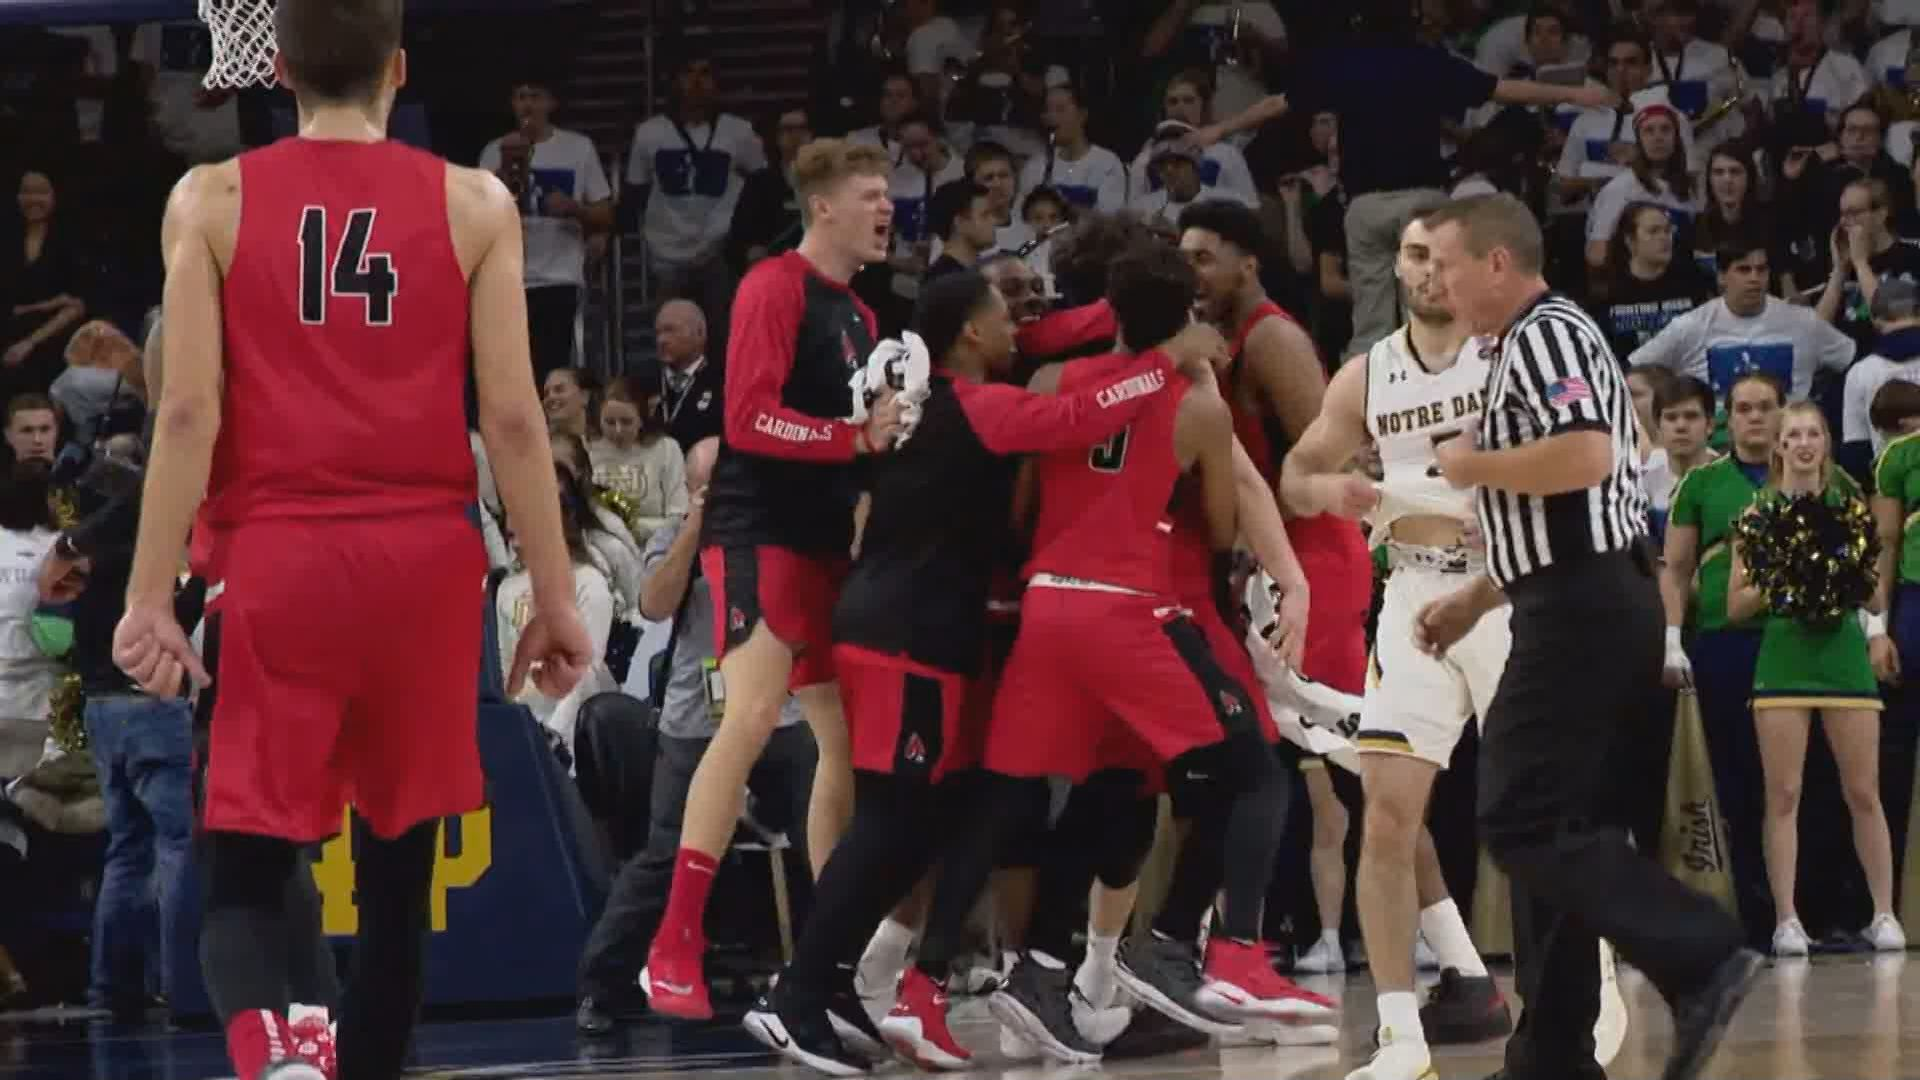 BALL STATE BEATS NOTRE DAME_299922